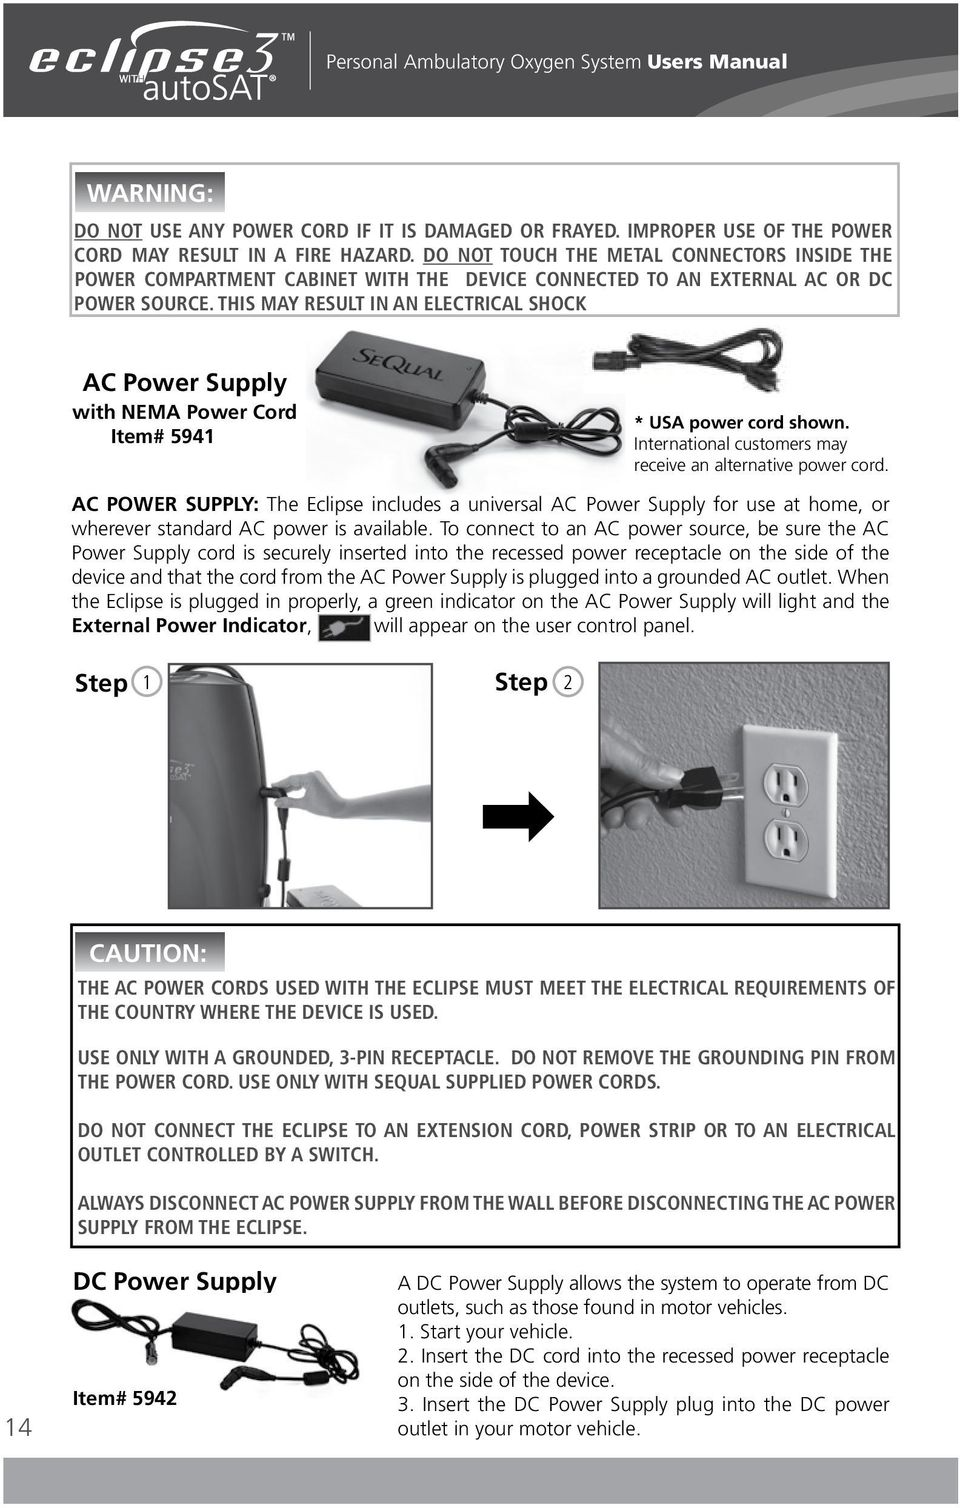 This may result in an electrical shock AC Power Supply with NEMA Power Cord Item# 5941 * USA power cord shown. International customers may receive an alternative power cord.